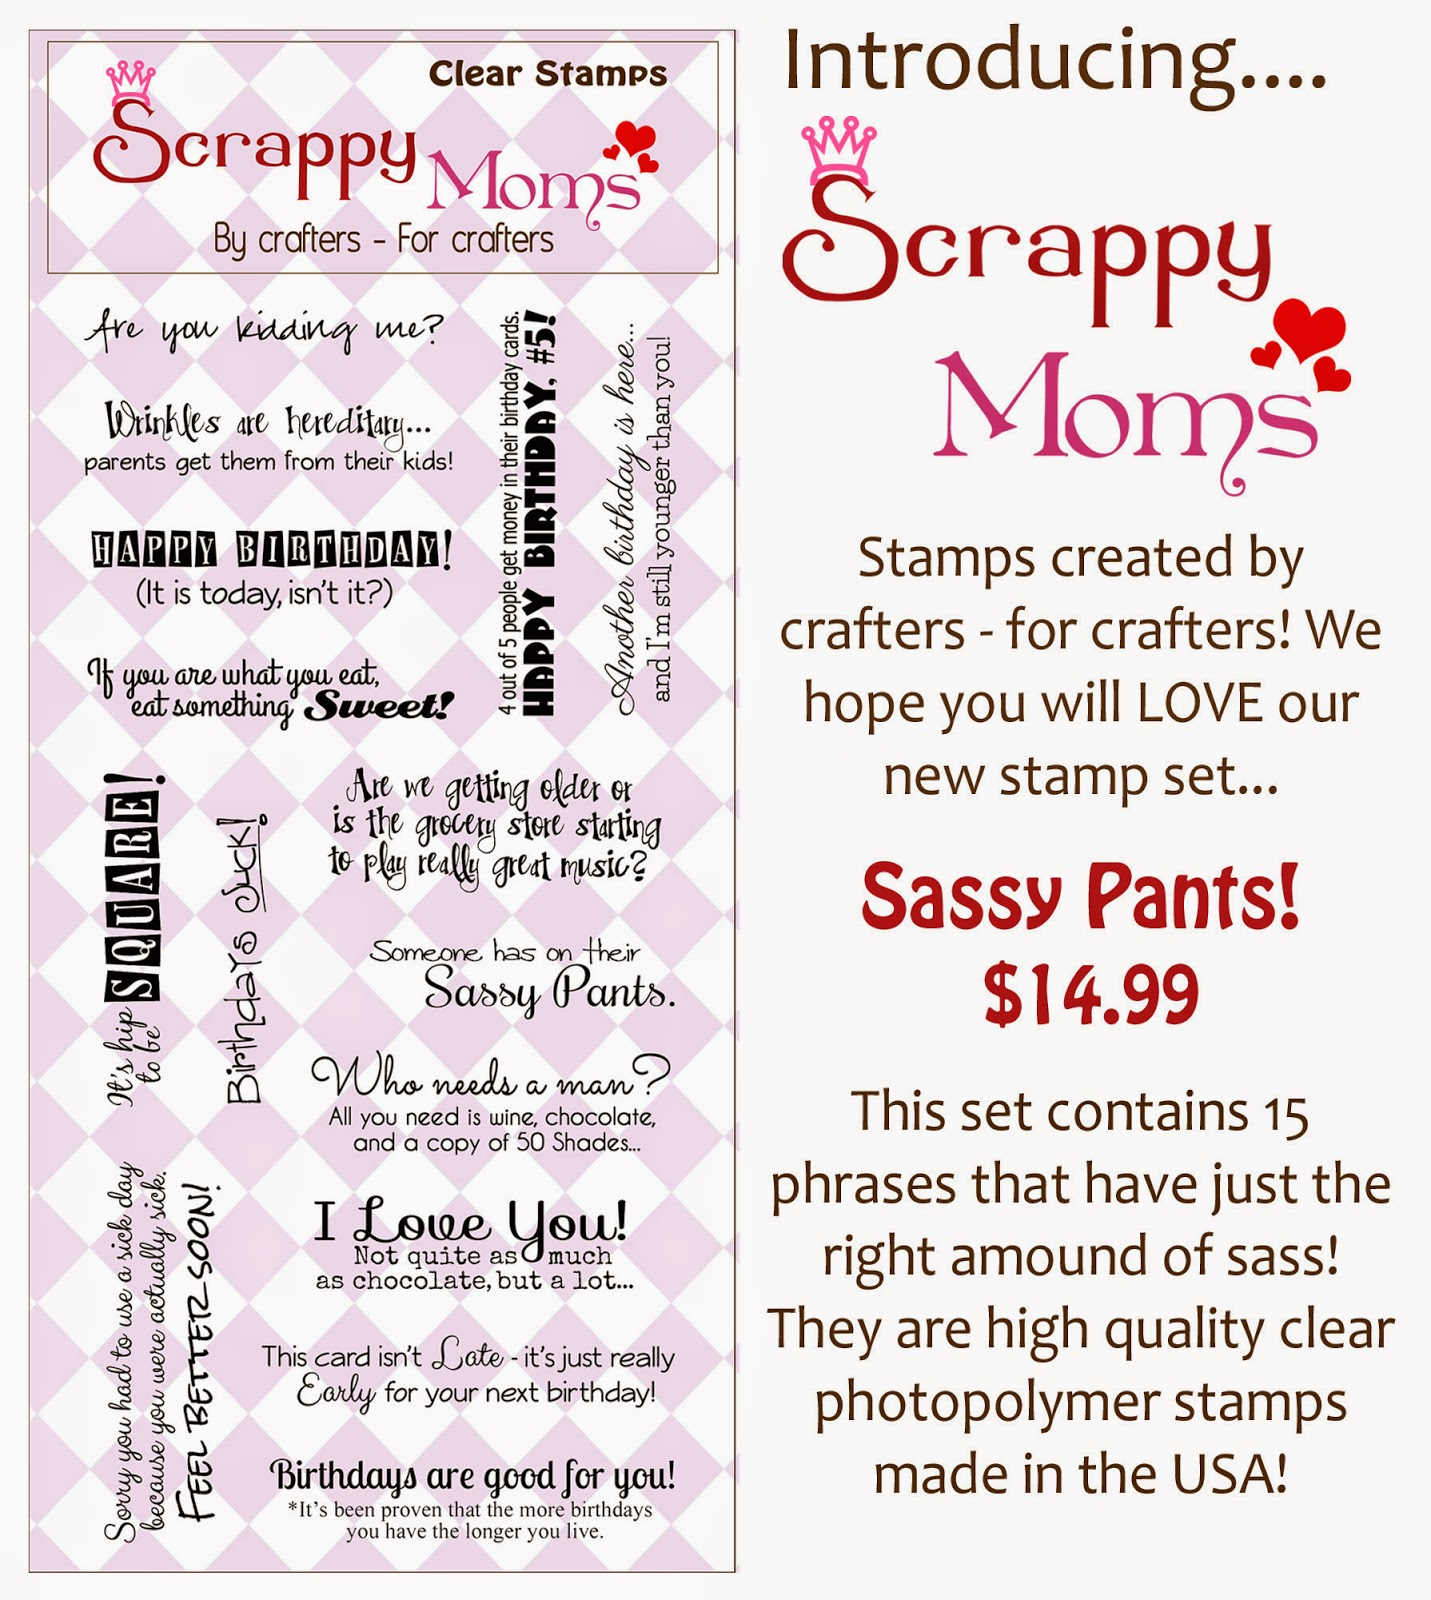 http://scrappymoms-stamps-store.blogspot.co.uk/2010/01/newest-stamp-sets.html